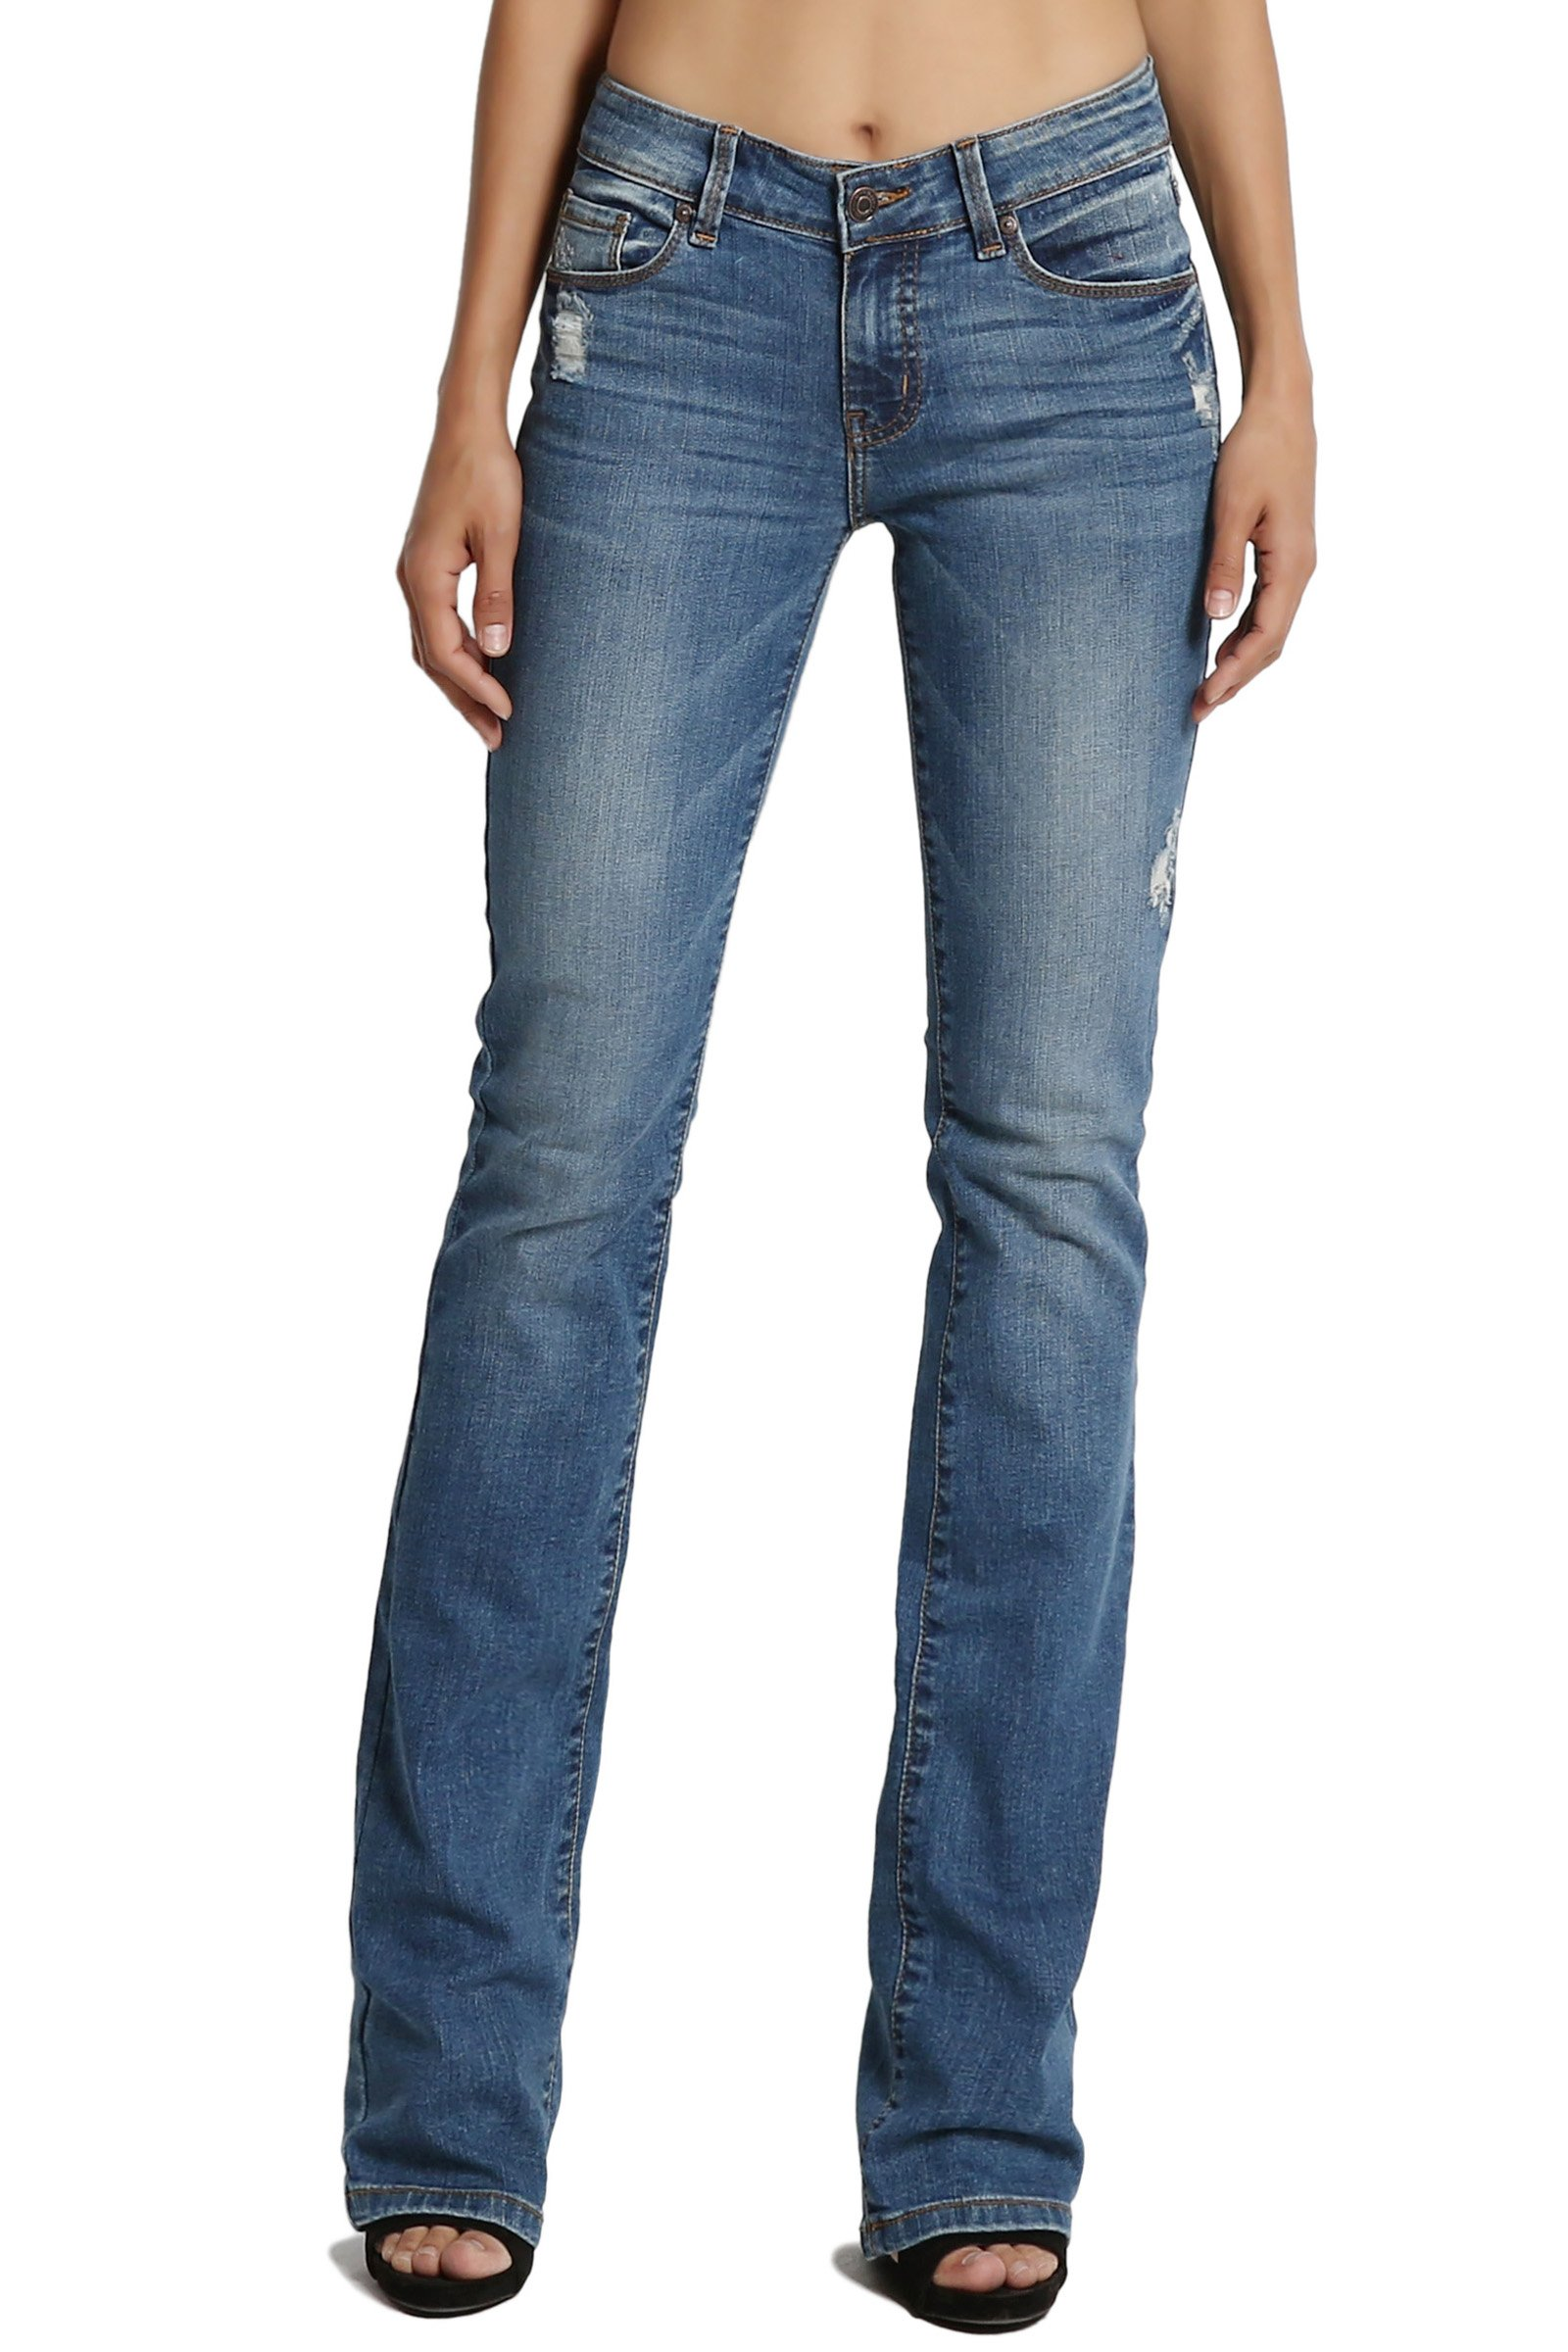 TheMogan Women's Mid Rise Slim Fit Bootcut Jeans with Soft Blue Denim Medium 11